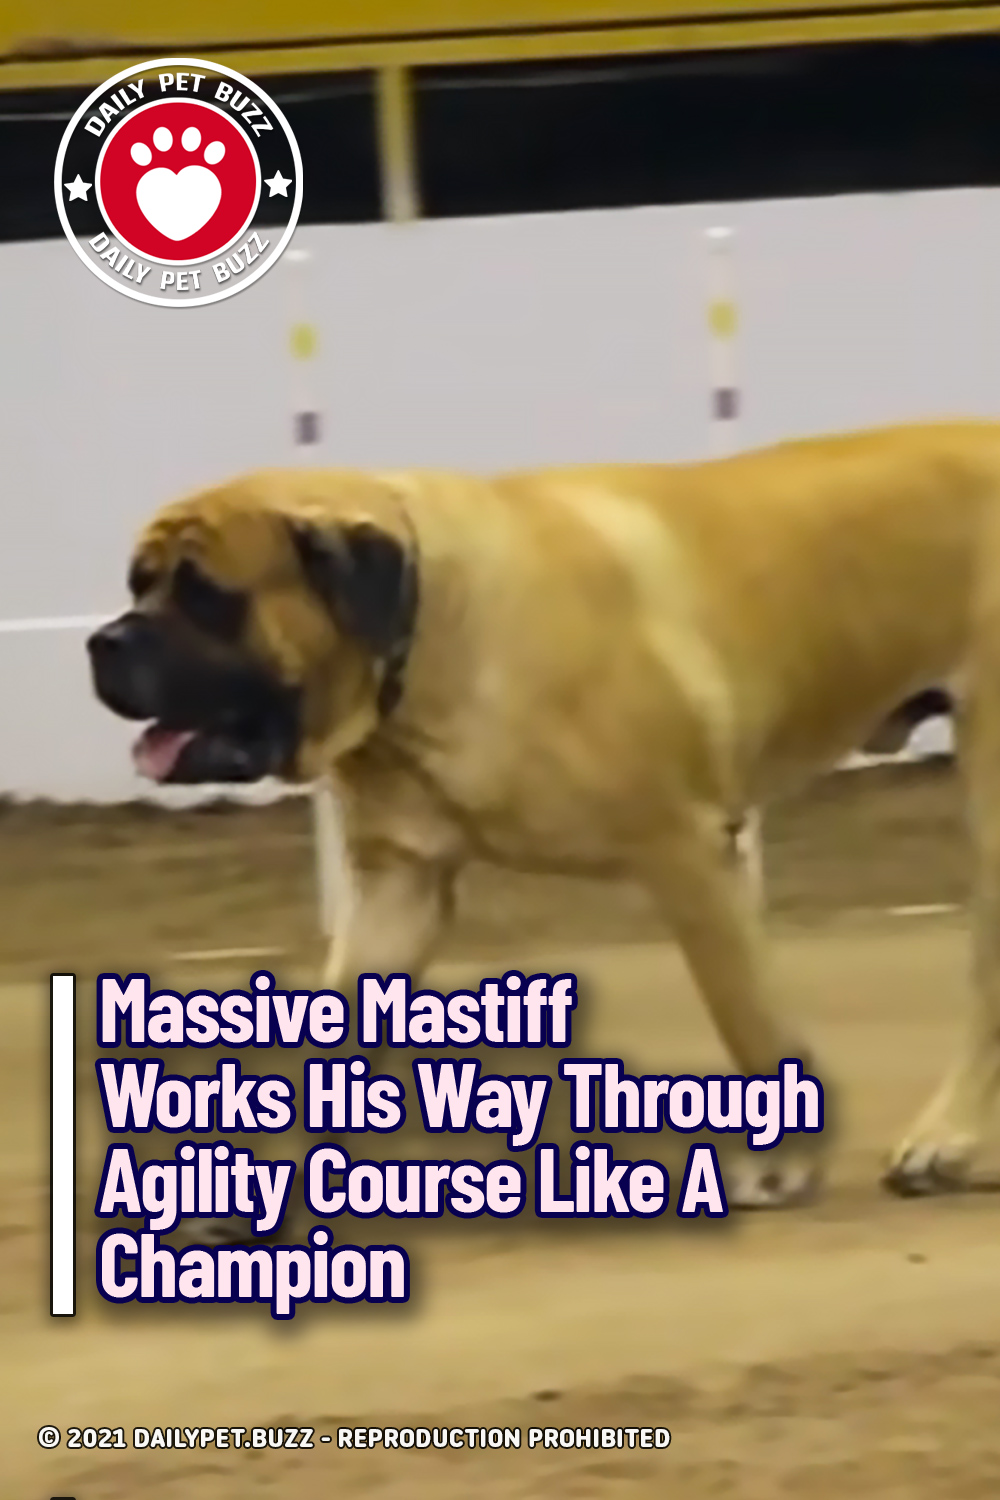 Massive Mastiff Works His Way Through Agility Course Like A Champion